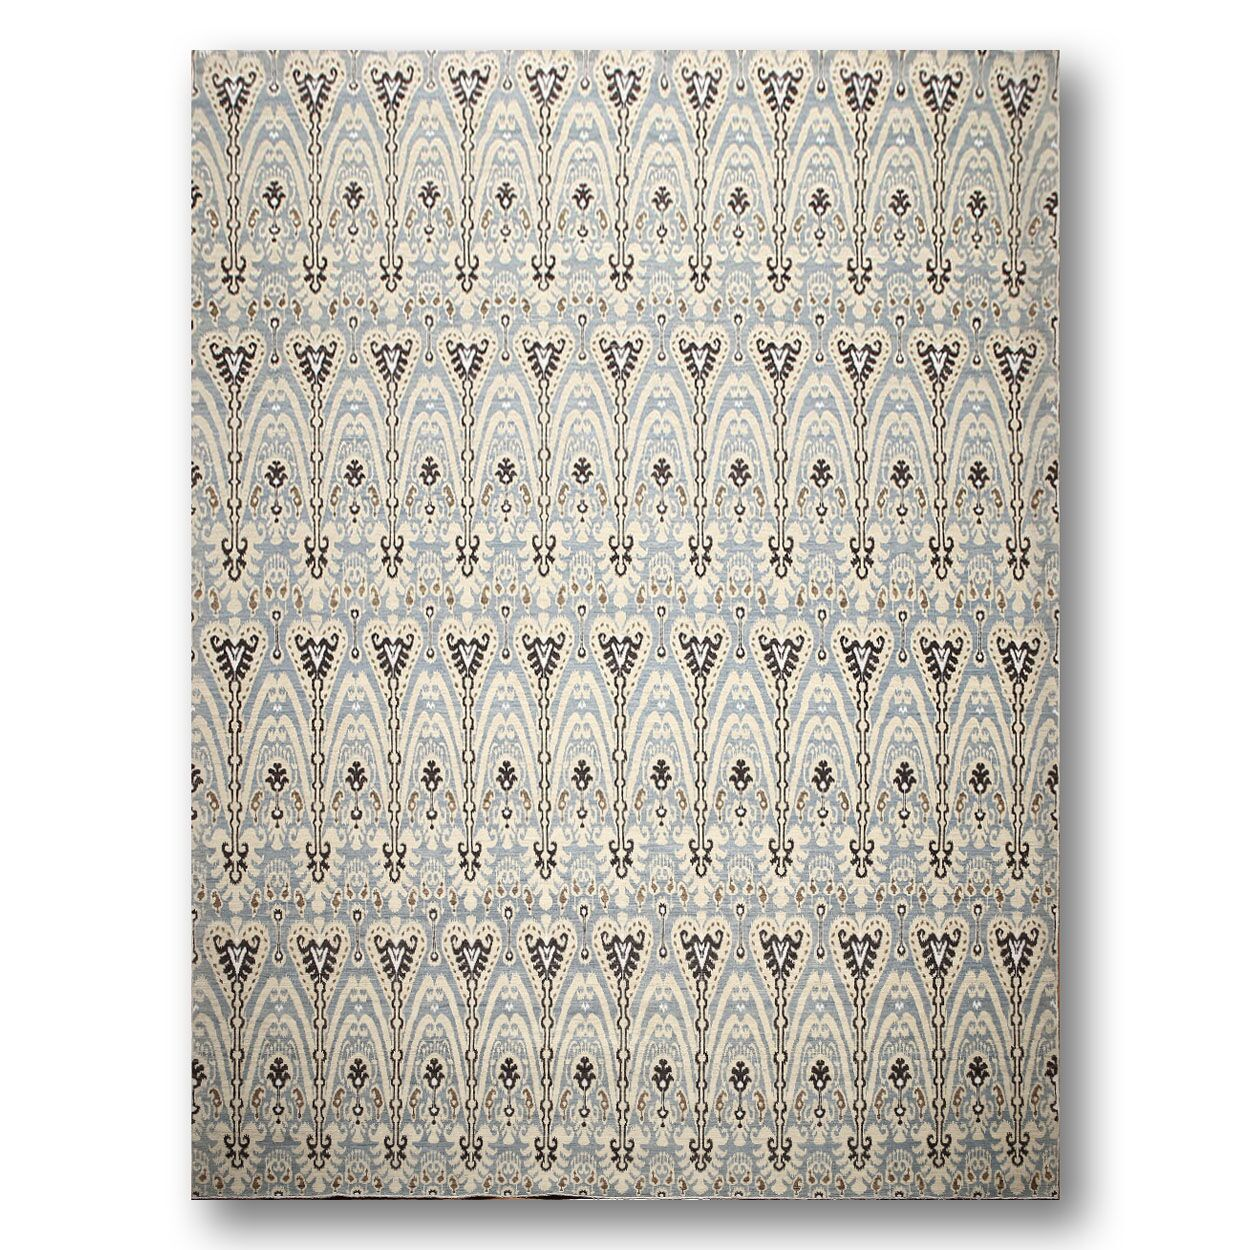 One-of-a-Kind Hadlow Hand-Knotted Wool Beige/Gray Area Rug